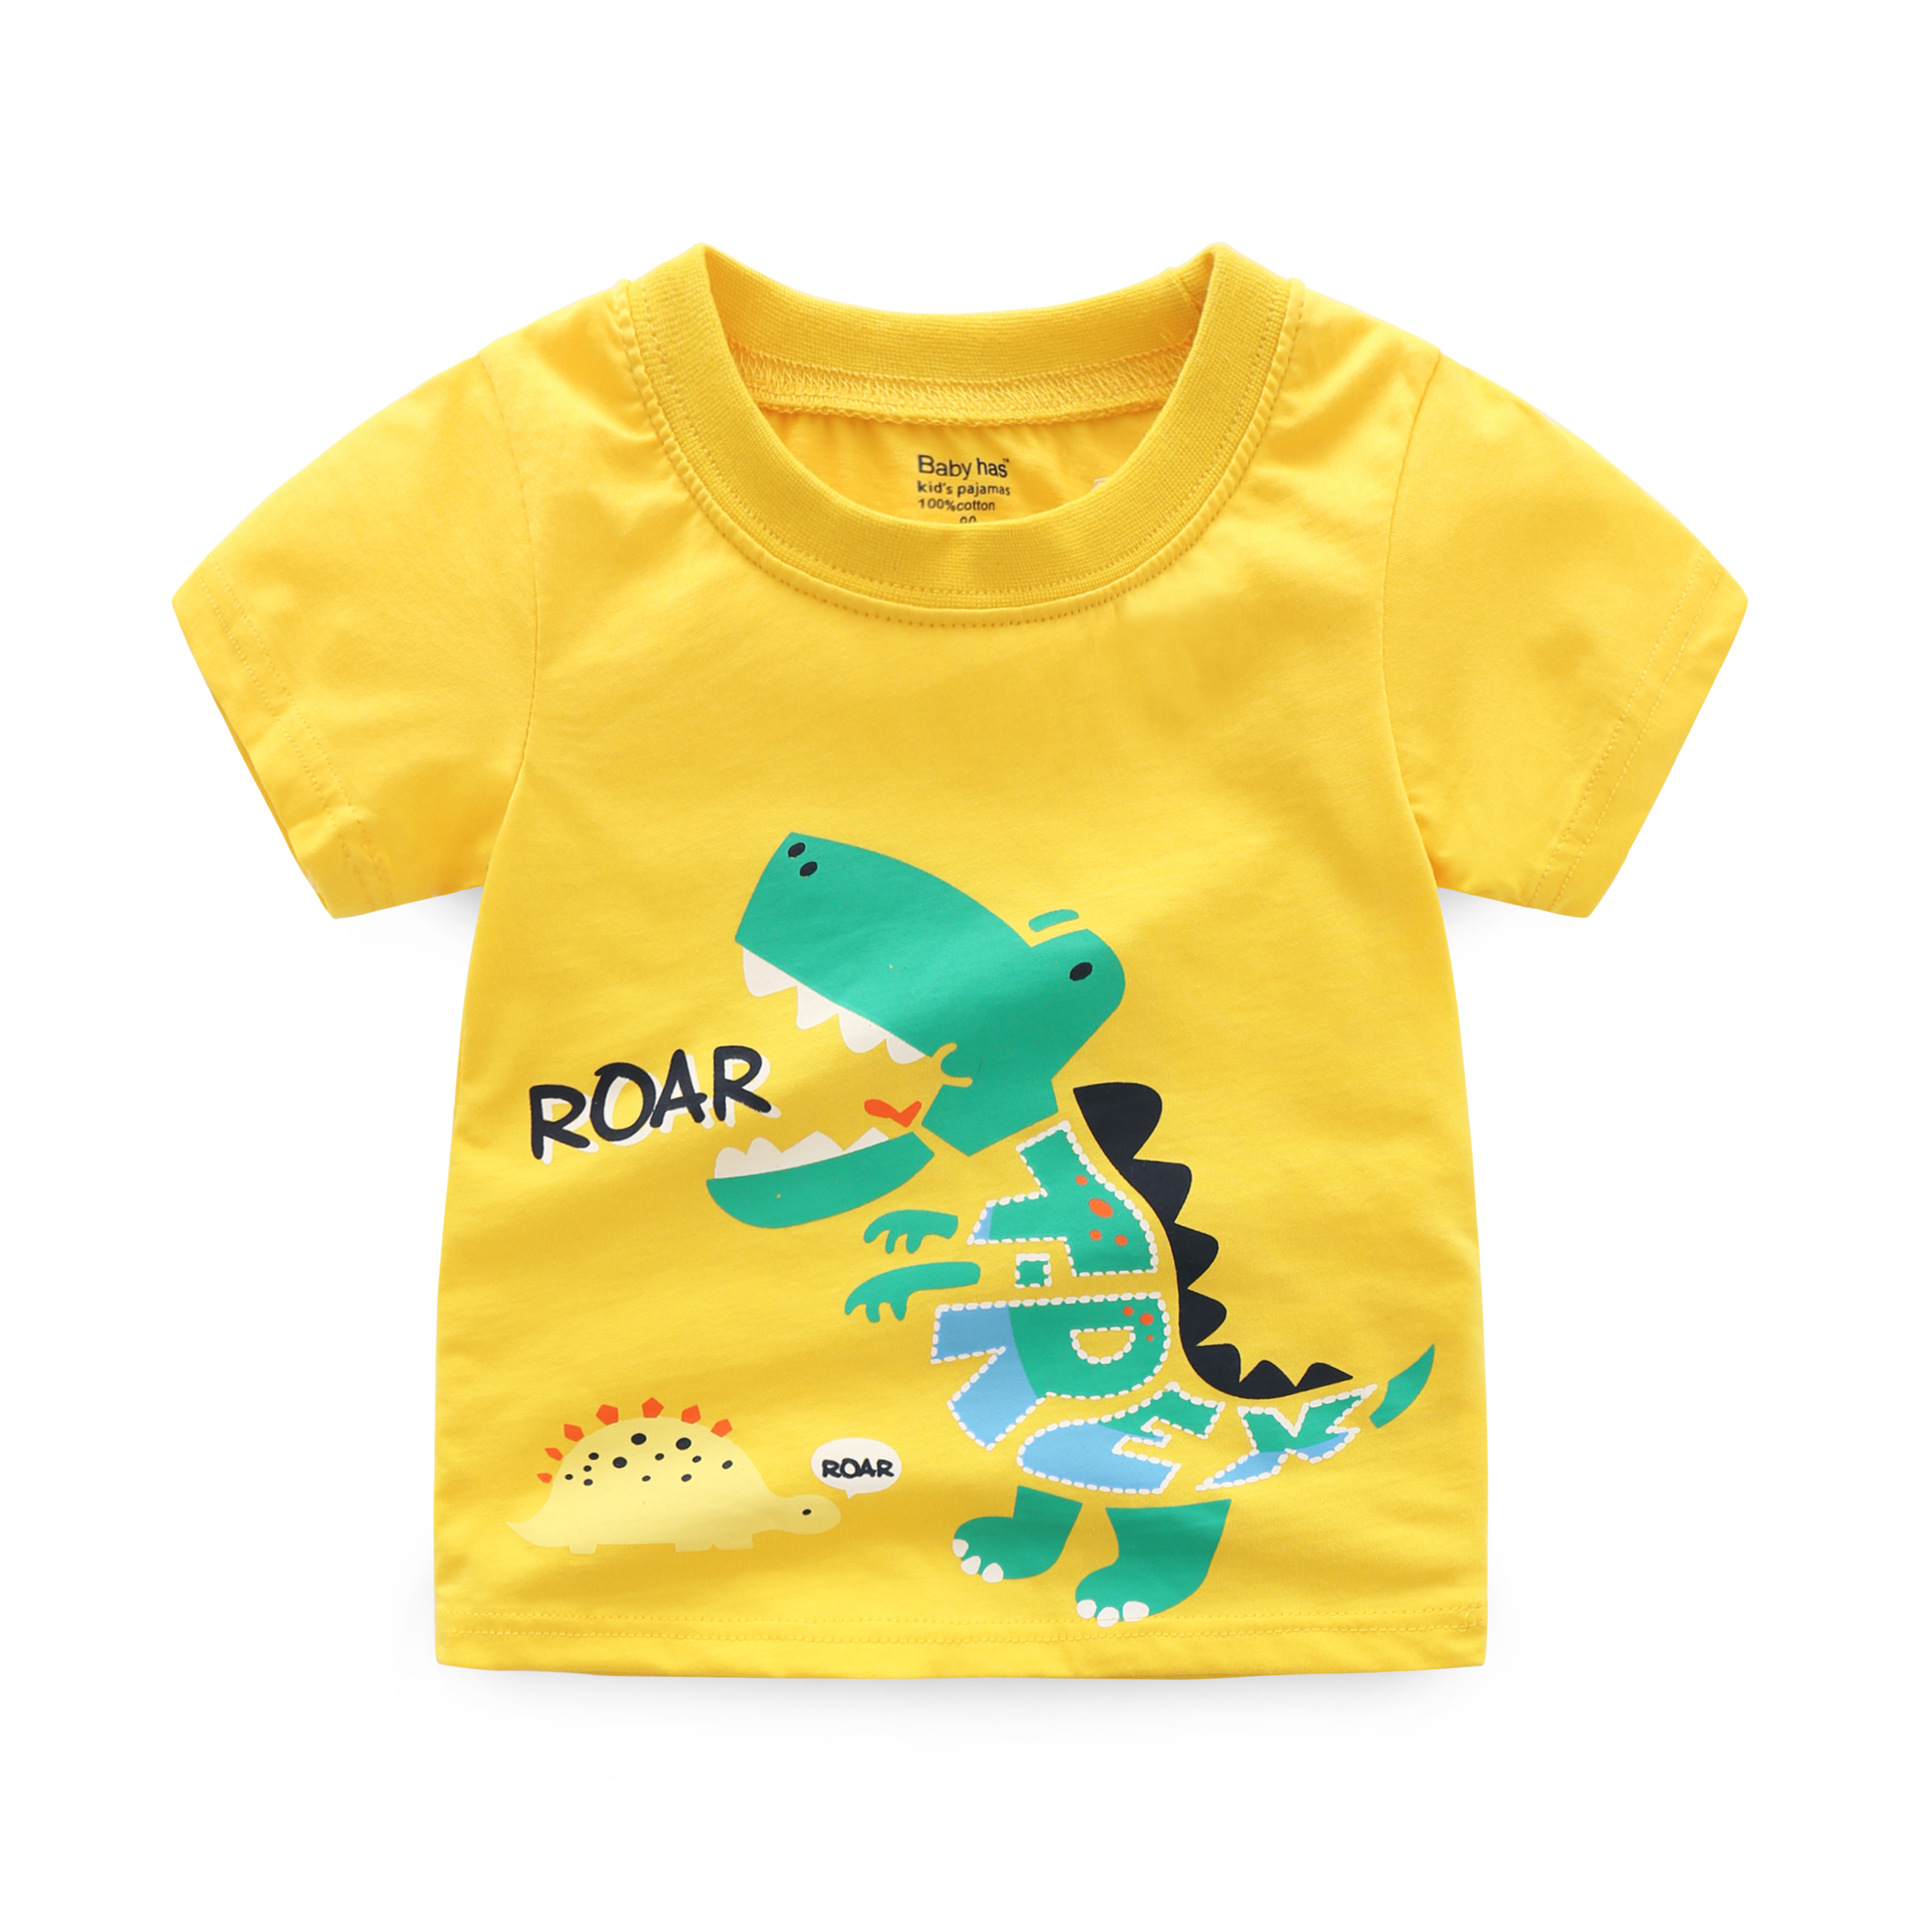 44953e8b0105c Cartoon Print Short Sleeve T shirt Toddler Kids Clothes Baby Boy Outfits  Tops+Shorts Pants Set 2018 New Summer Children Clothing-in Clothing Sets  from ...